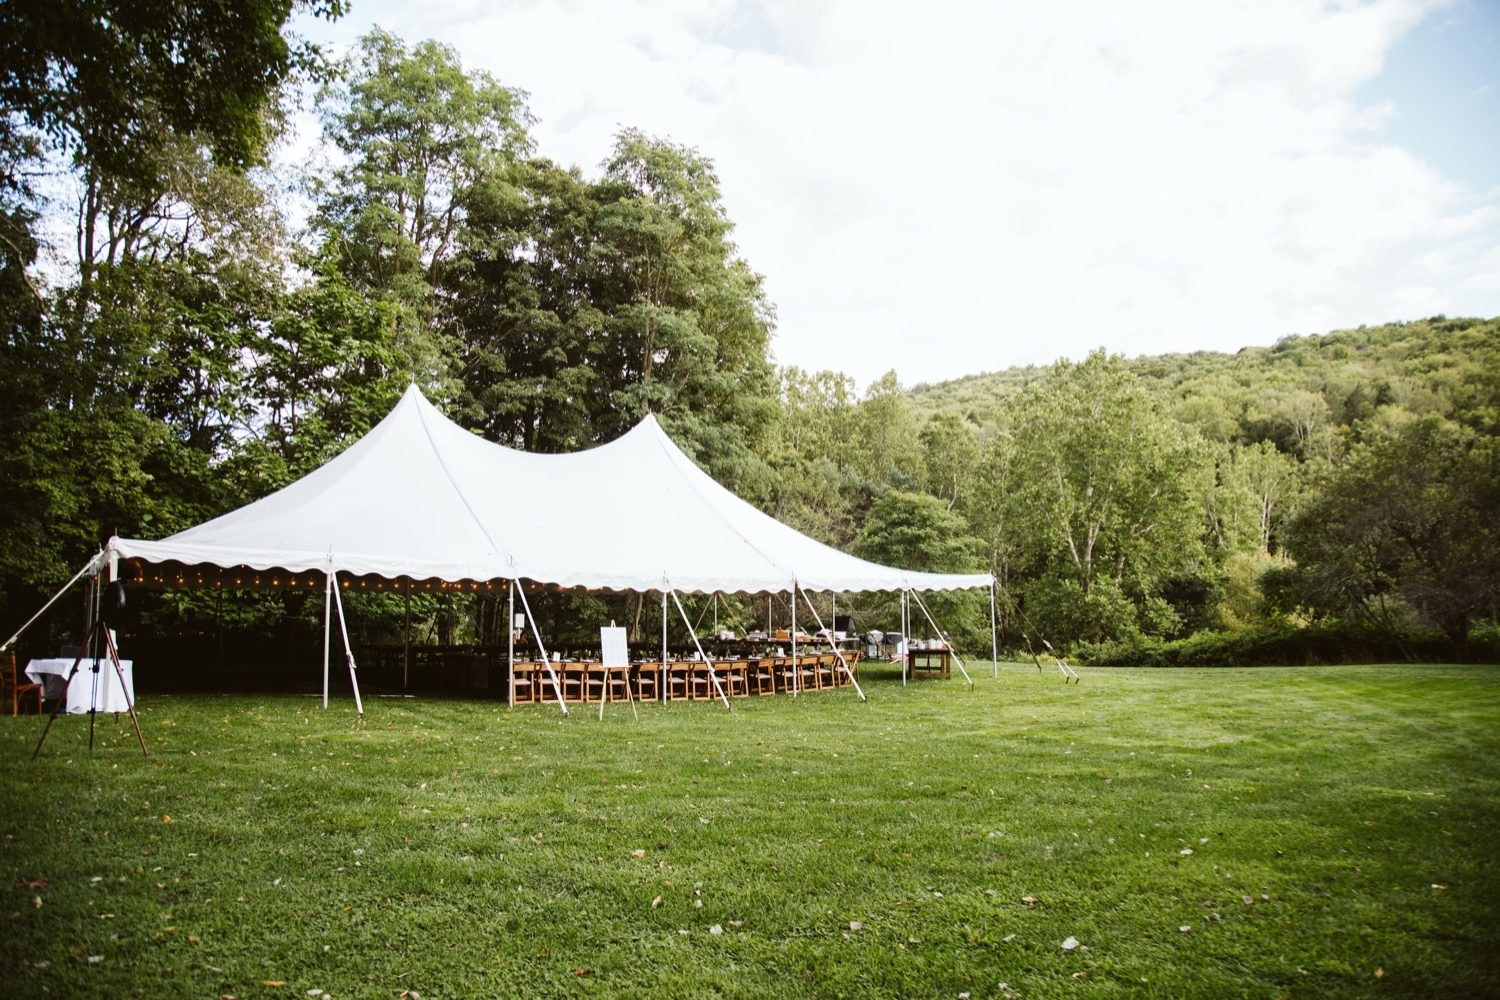 Catskills wedding photographer, NYC Wedding Photographer, Hudson Valley Wedding Photographer, Wedding at North Branch Inn, North Branch Inn Wedding Gallery, North Branch Inn Catskills Wedding